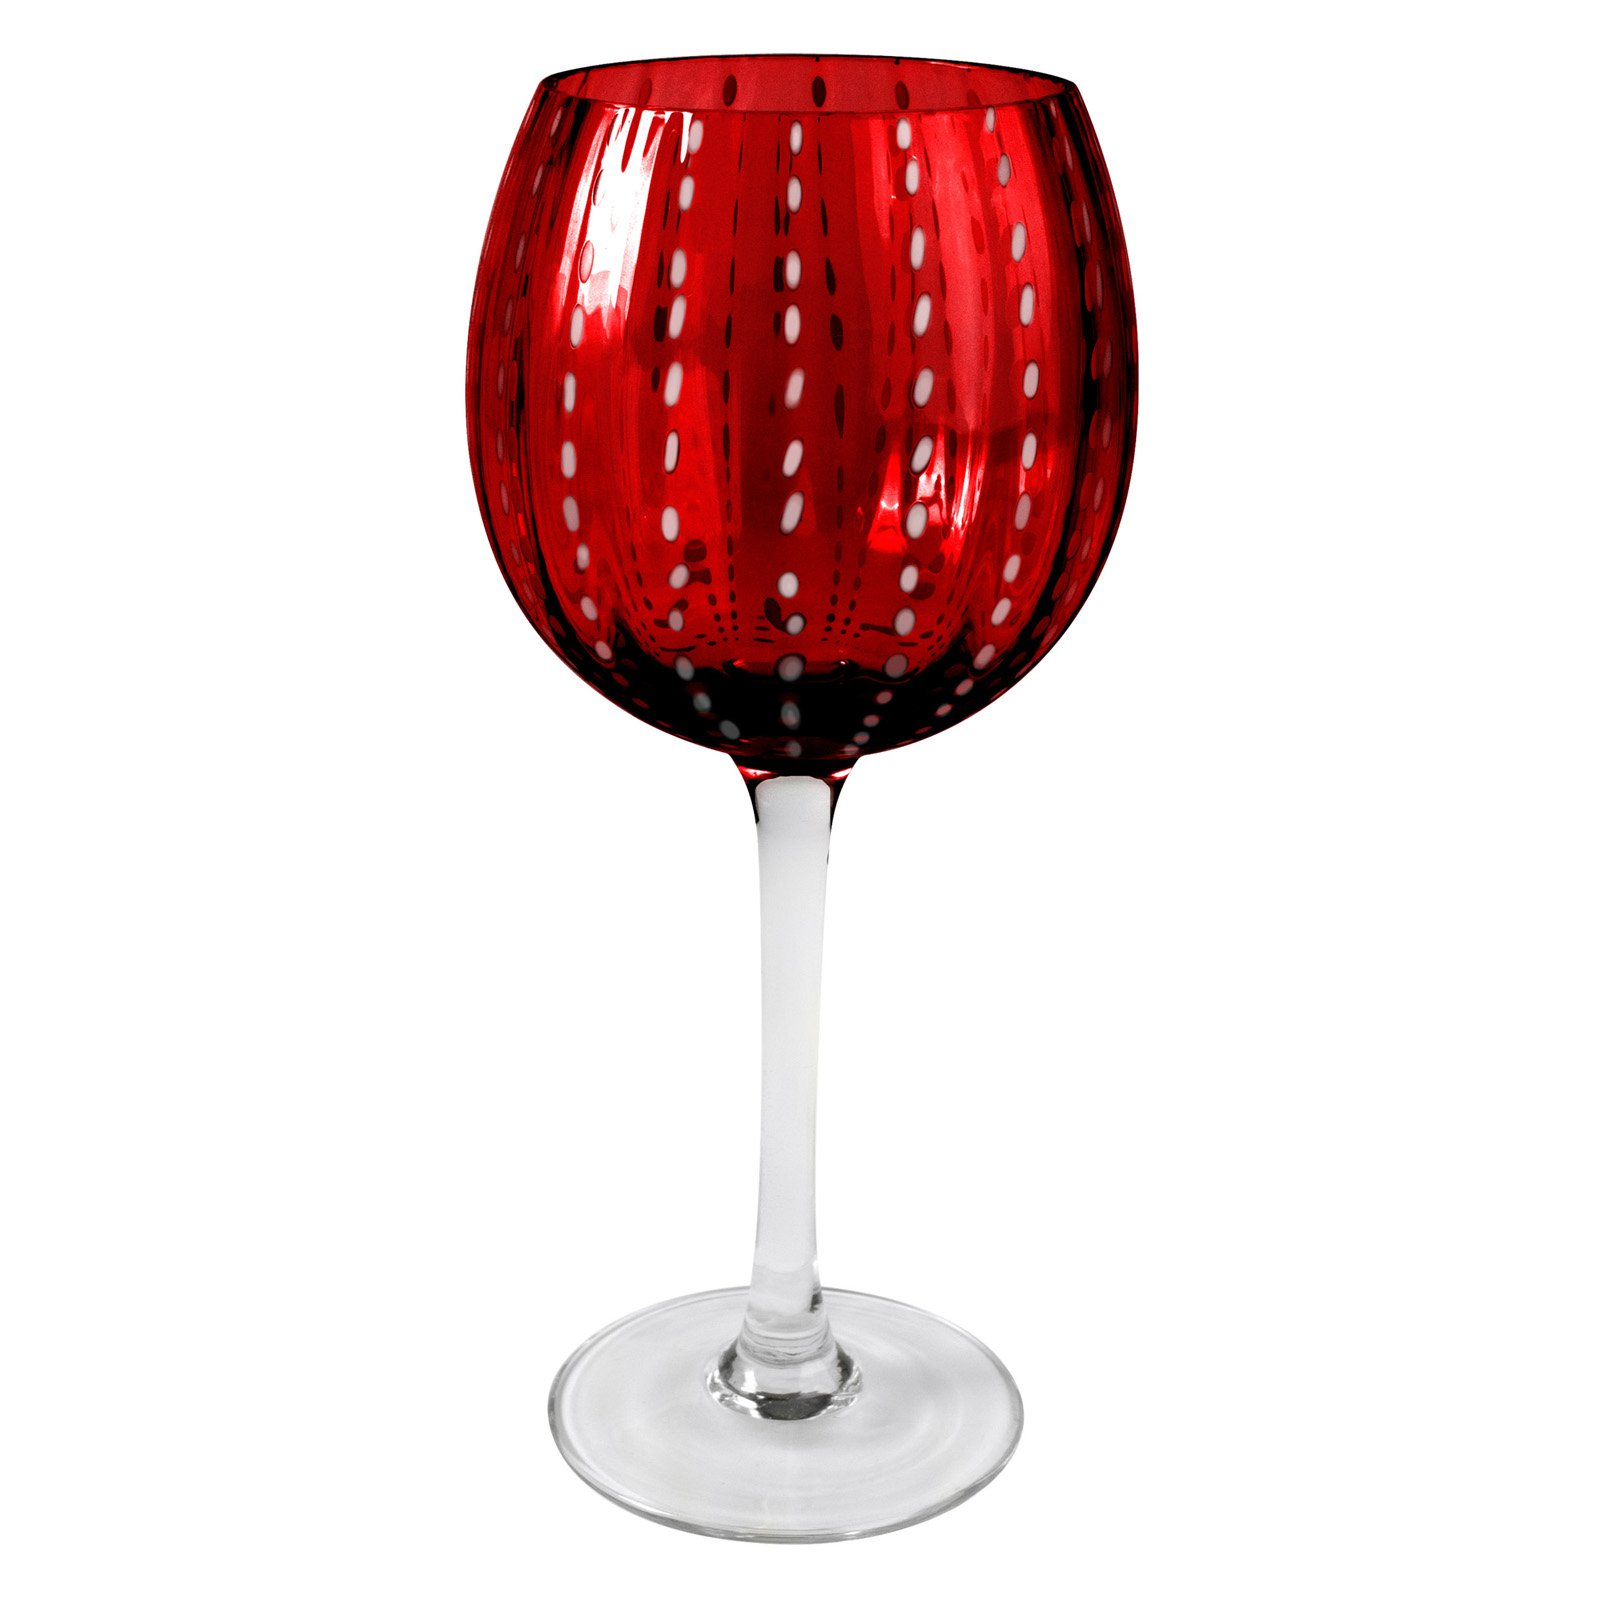 Artland Inc. Ruby Cambria Goblet Glasses - Set of 4